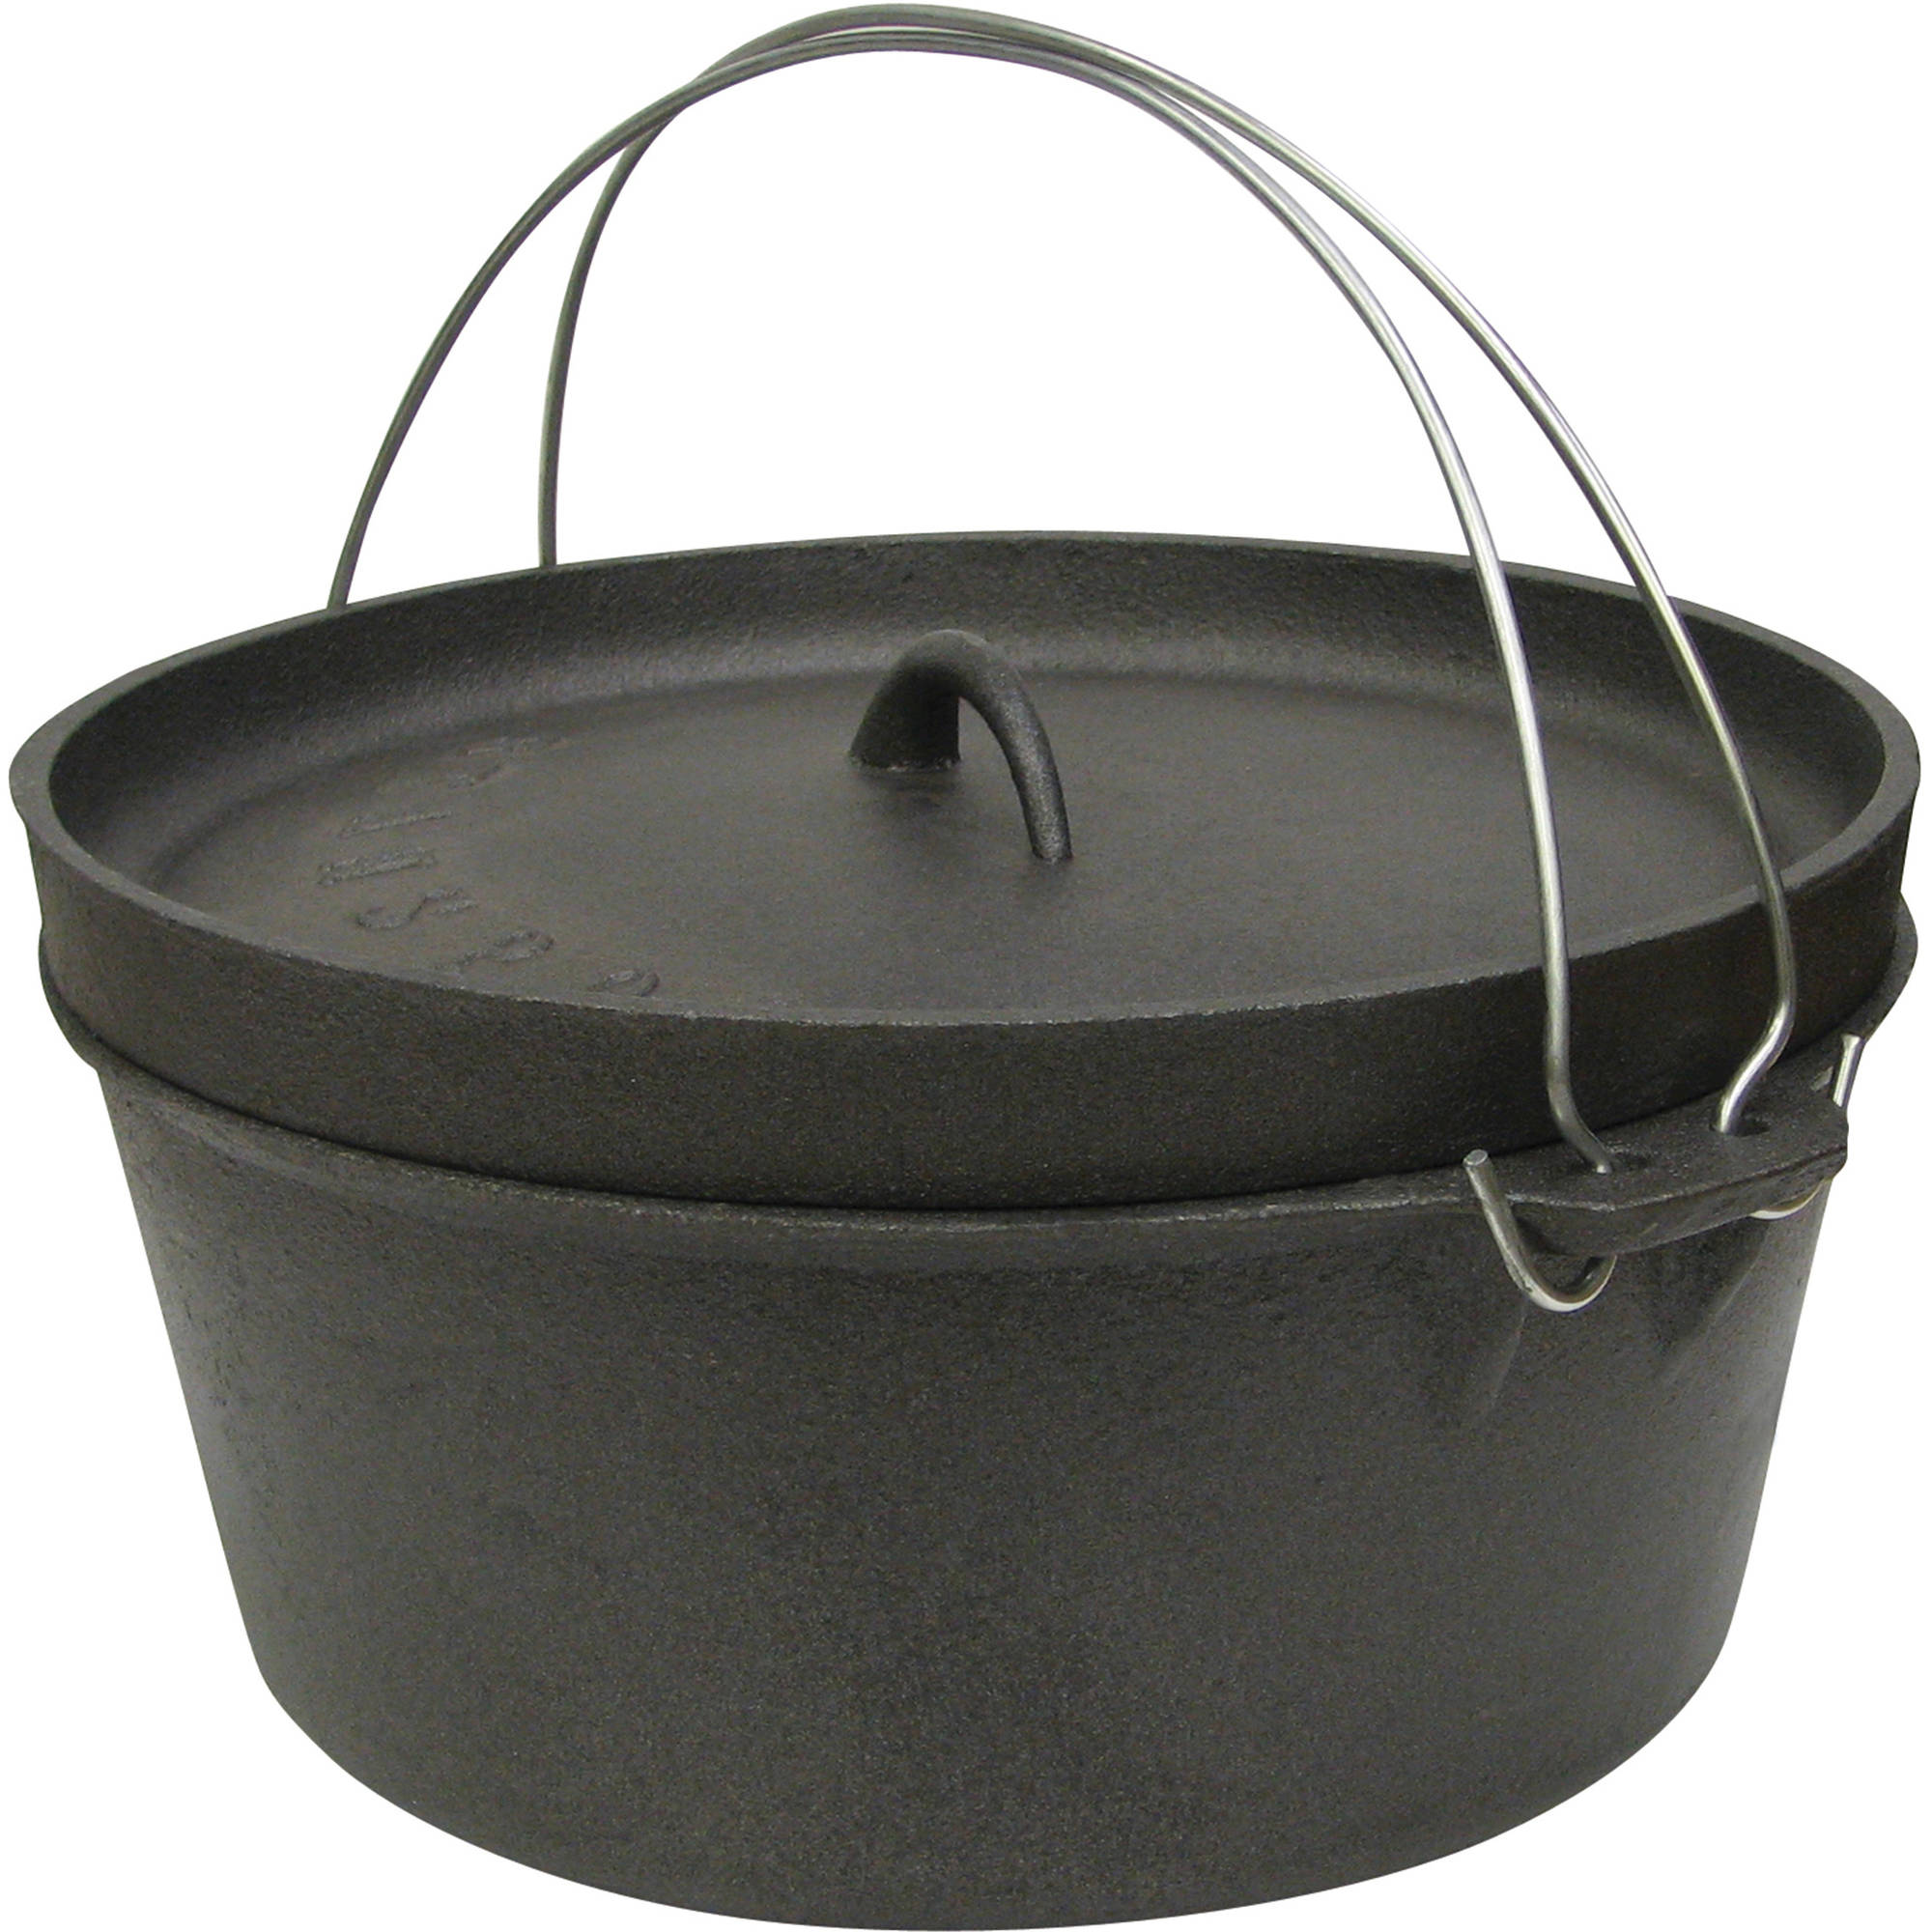 Stansport Cast Iron Dutch Oven, Without Legs by Stansport